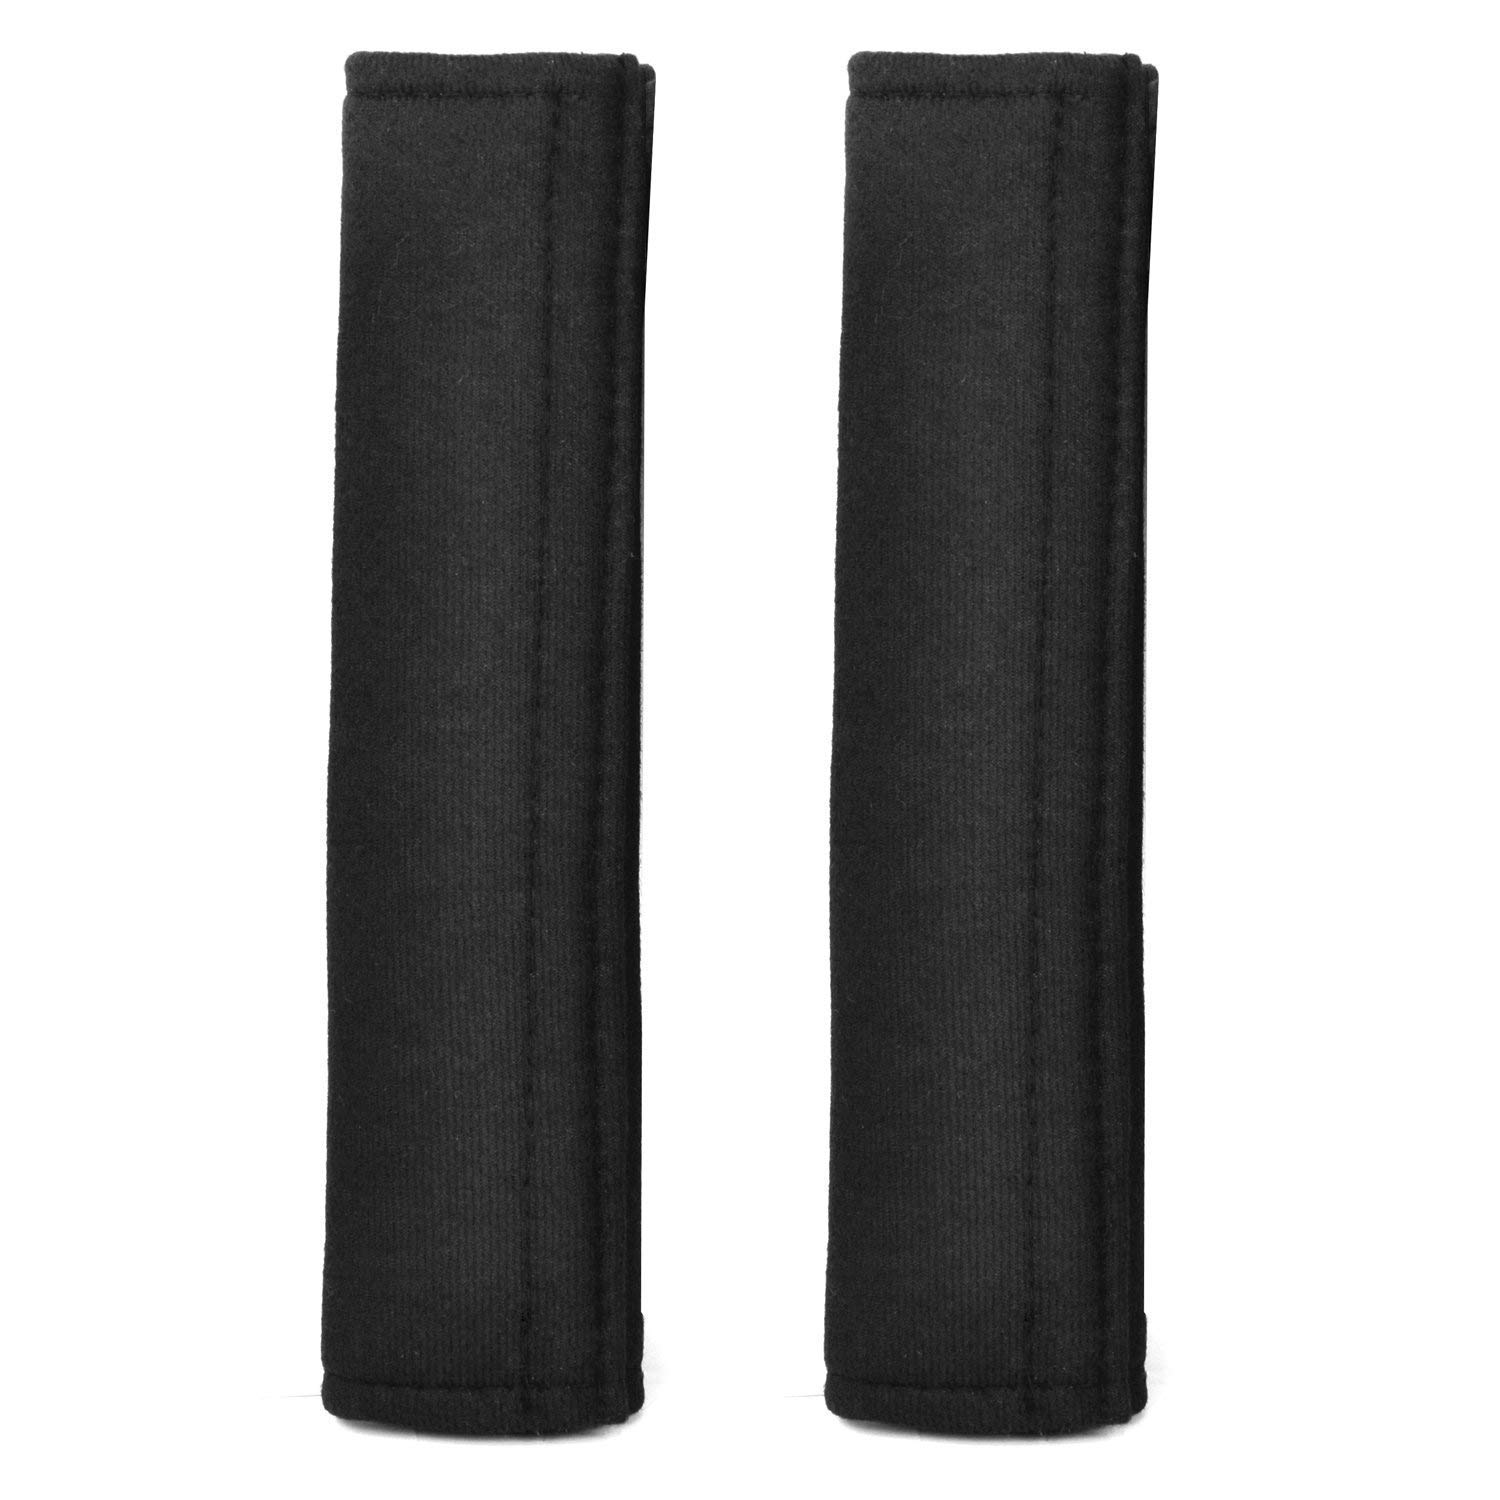 SODIAL Seatbelt Strap Cover - 2 Car Seat Belt Comfort Pads with Hook and Loop - Black Travel Cushion Seat Belt Covers